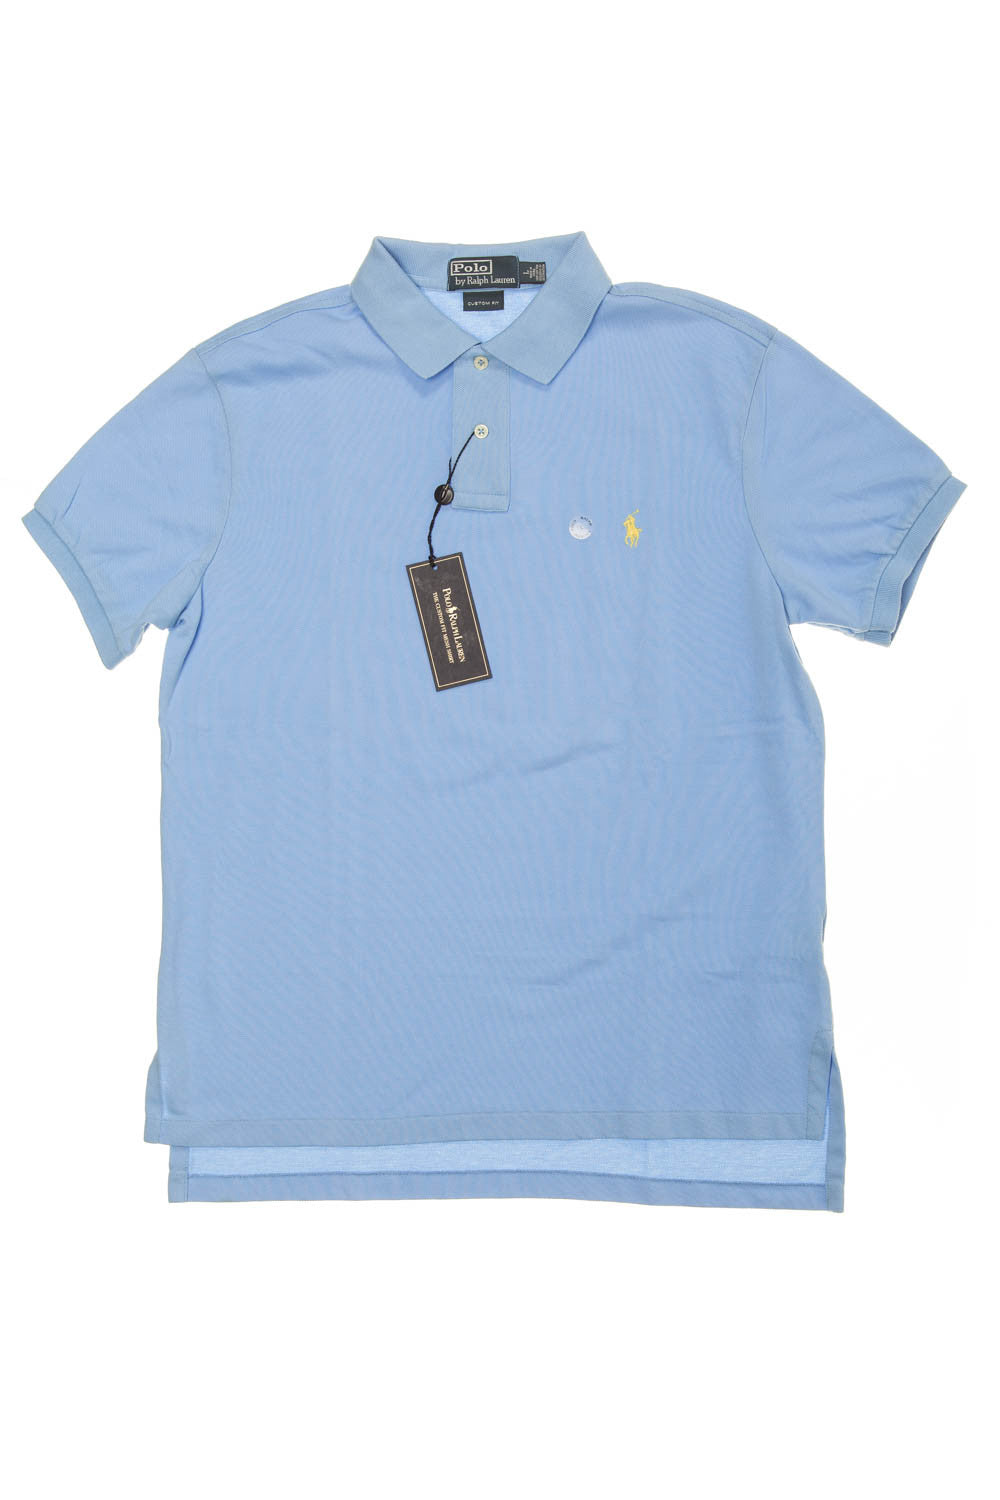 Ralph Lauren - New with Tags Baby Blue Short Sleeve Polo - L